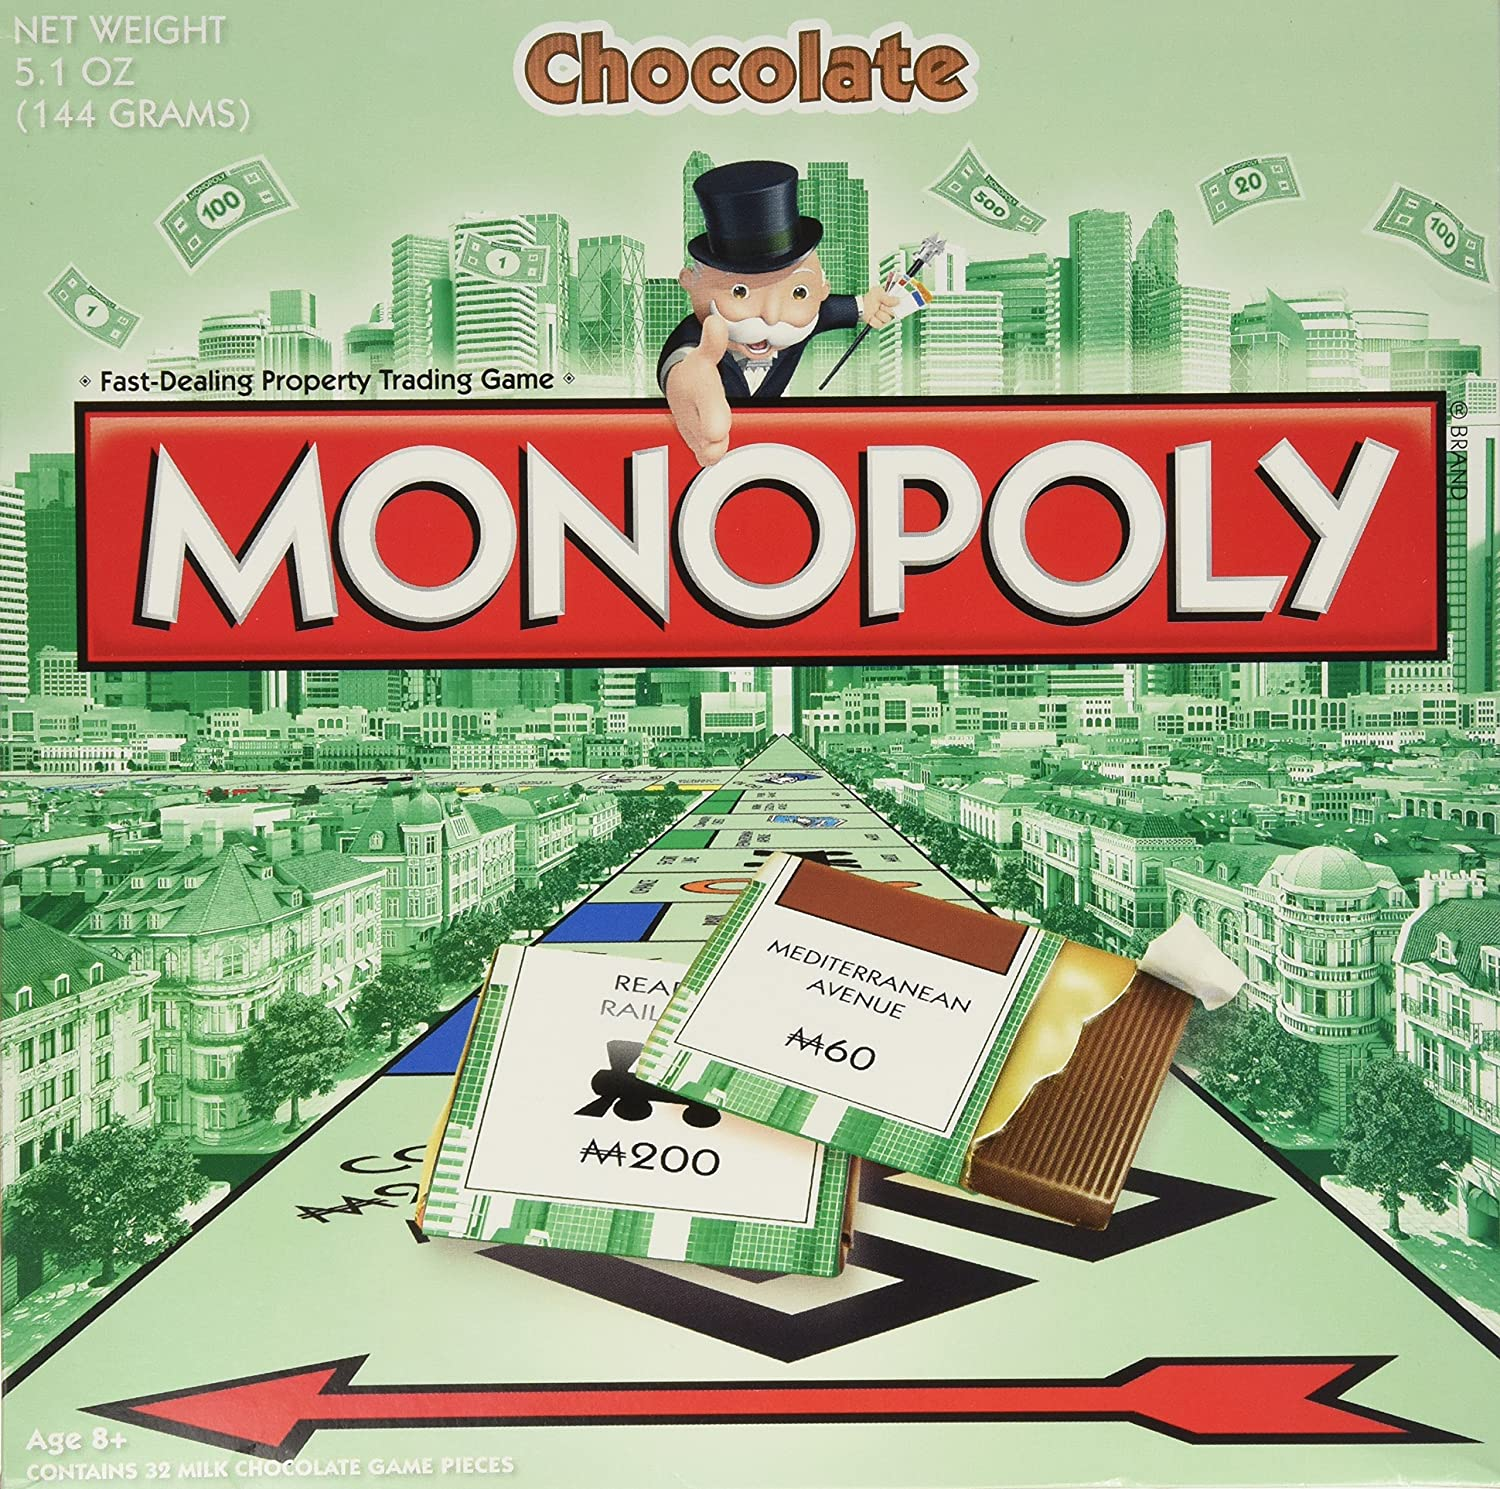 Amazon.com : Monopoly Chocolate Editions of Hasbro Games Monopoly ...